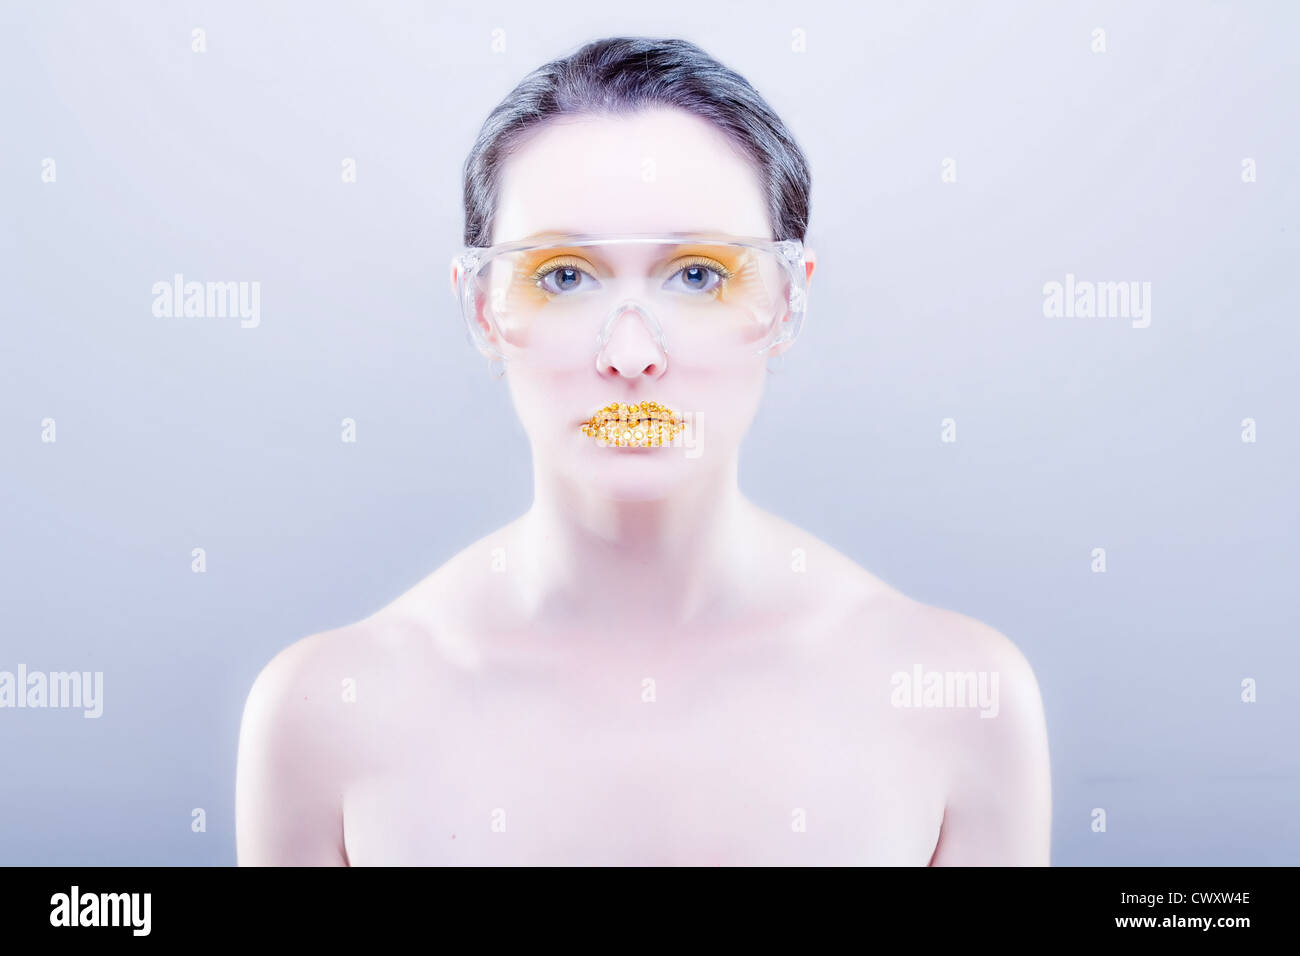 Young caucasian woman with gold fashion makeup portant des lunettes claires et or diamonties sur ses lèvres Photo Stock